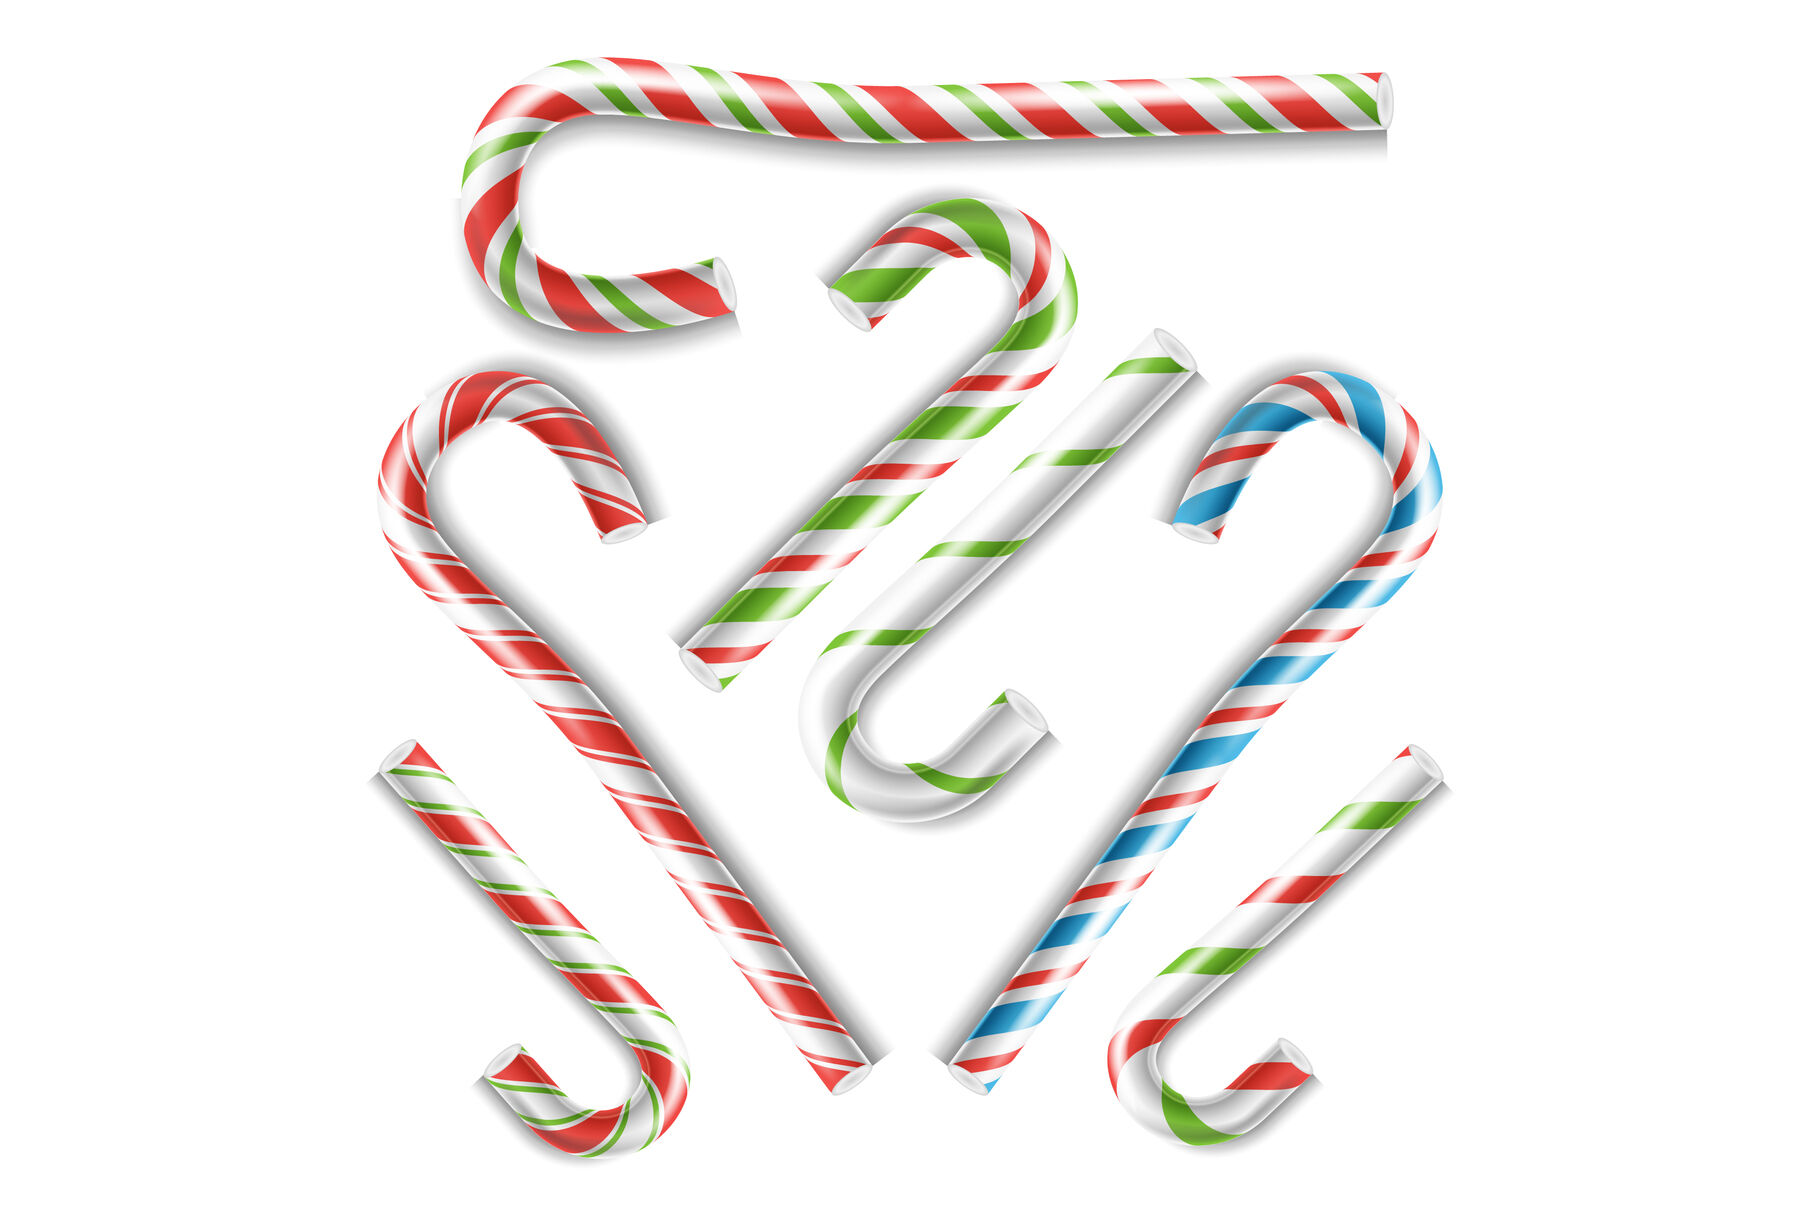 Classic Xmas Candy Cane Vector Isolated On White Illustration By